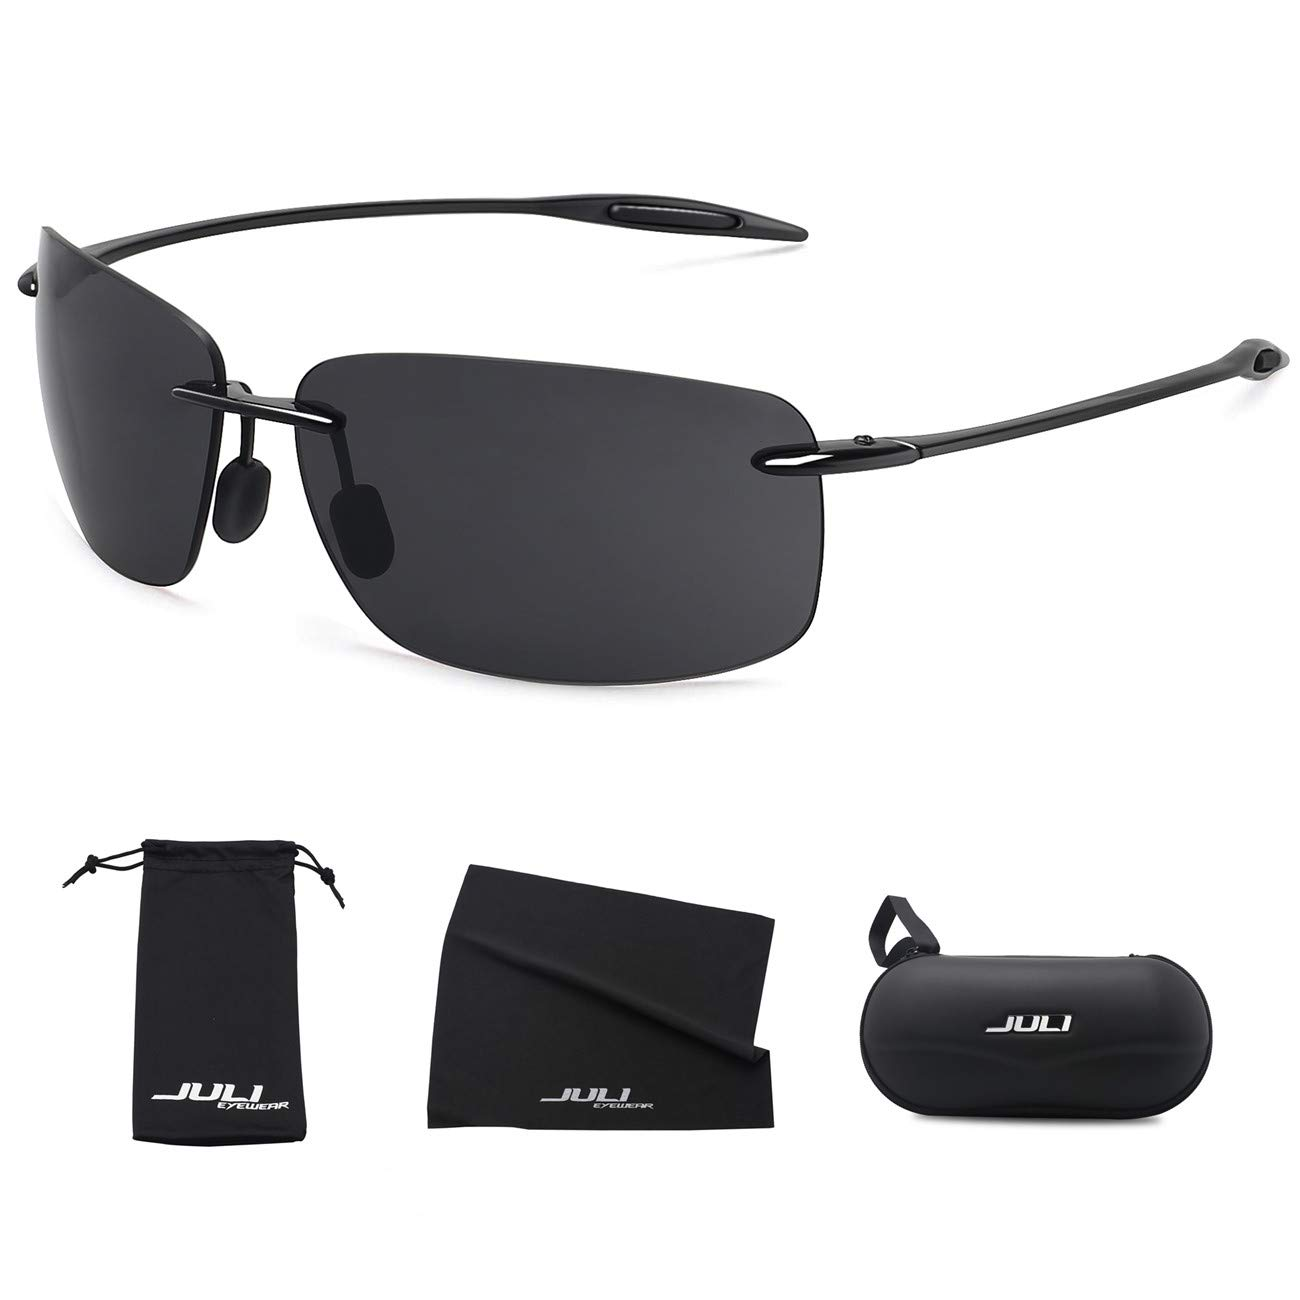 c99e2a2bf40 Details about JULI Sports Sunglasses for Men Women Tr90 Rimless Frame for  Running Fishing Golf